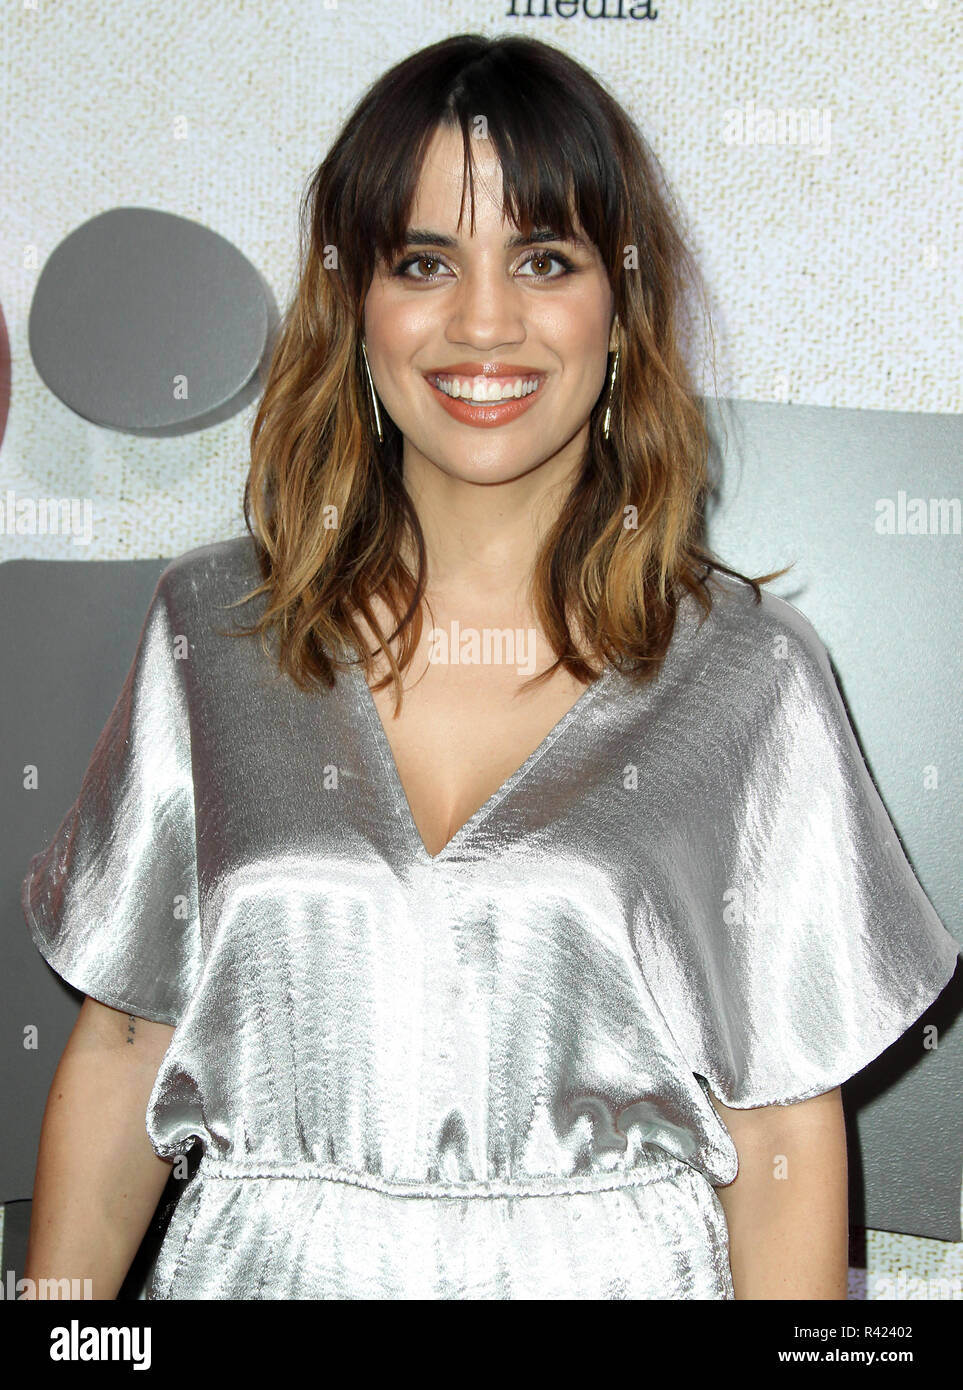 """""""Suspiria"""" Los Angeles Premiere held at The Arclight Hollywood Cinema Dome in Los Angeles, California.  Featuring: Natalie Morales Where: Los Angeles, California, United States When: 24 Oct 2018 Credit: Adriana M. Barraza/WENN.com Stock Photo"""